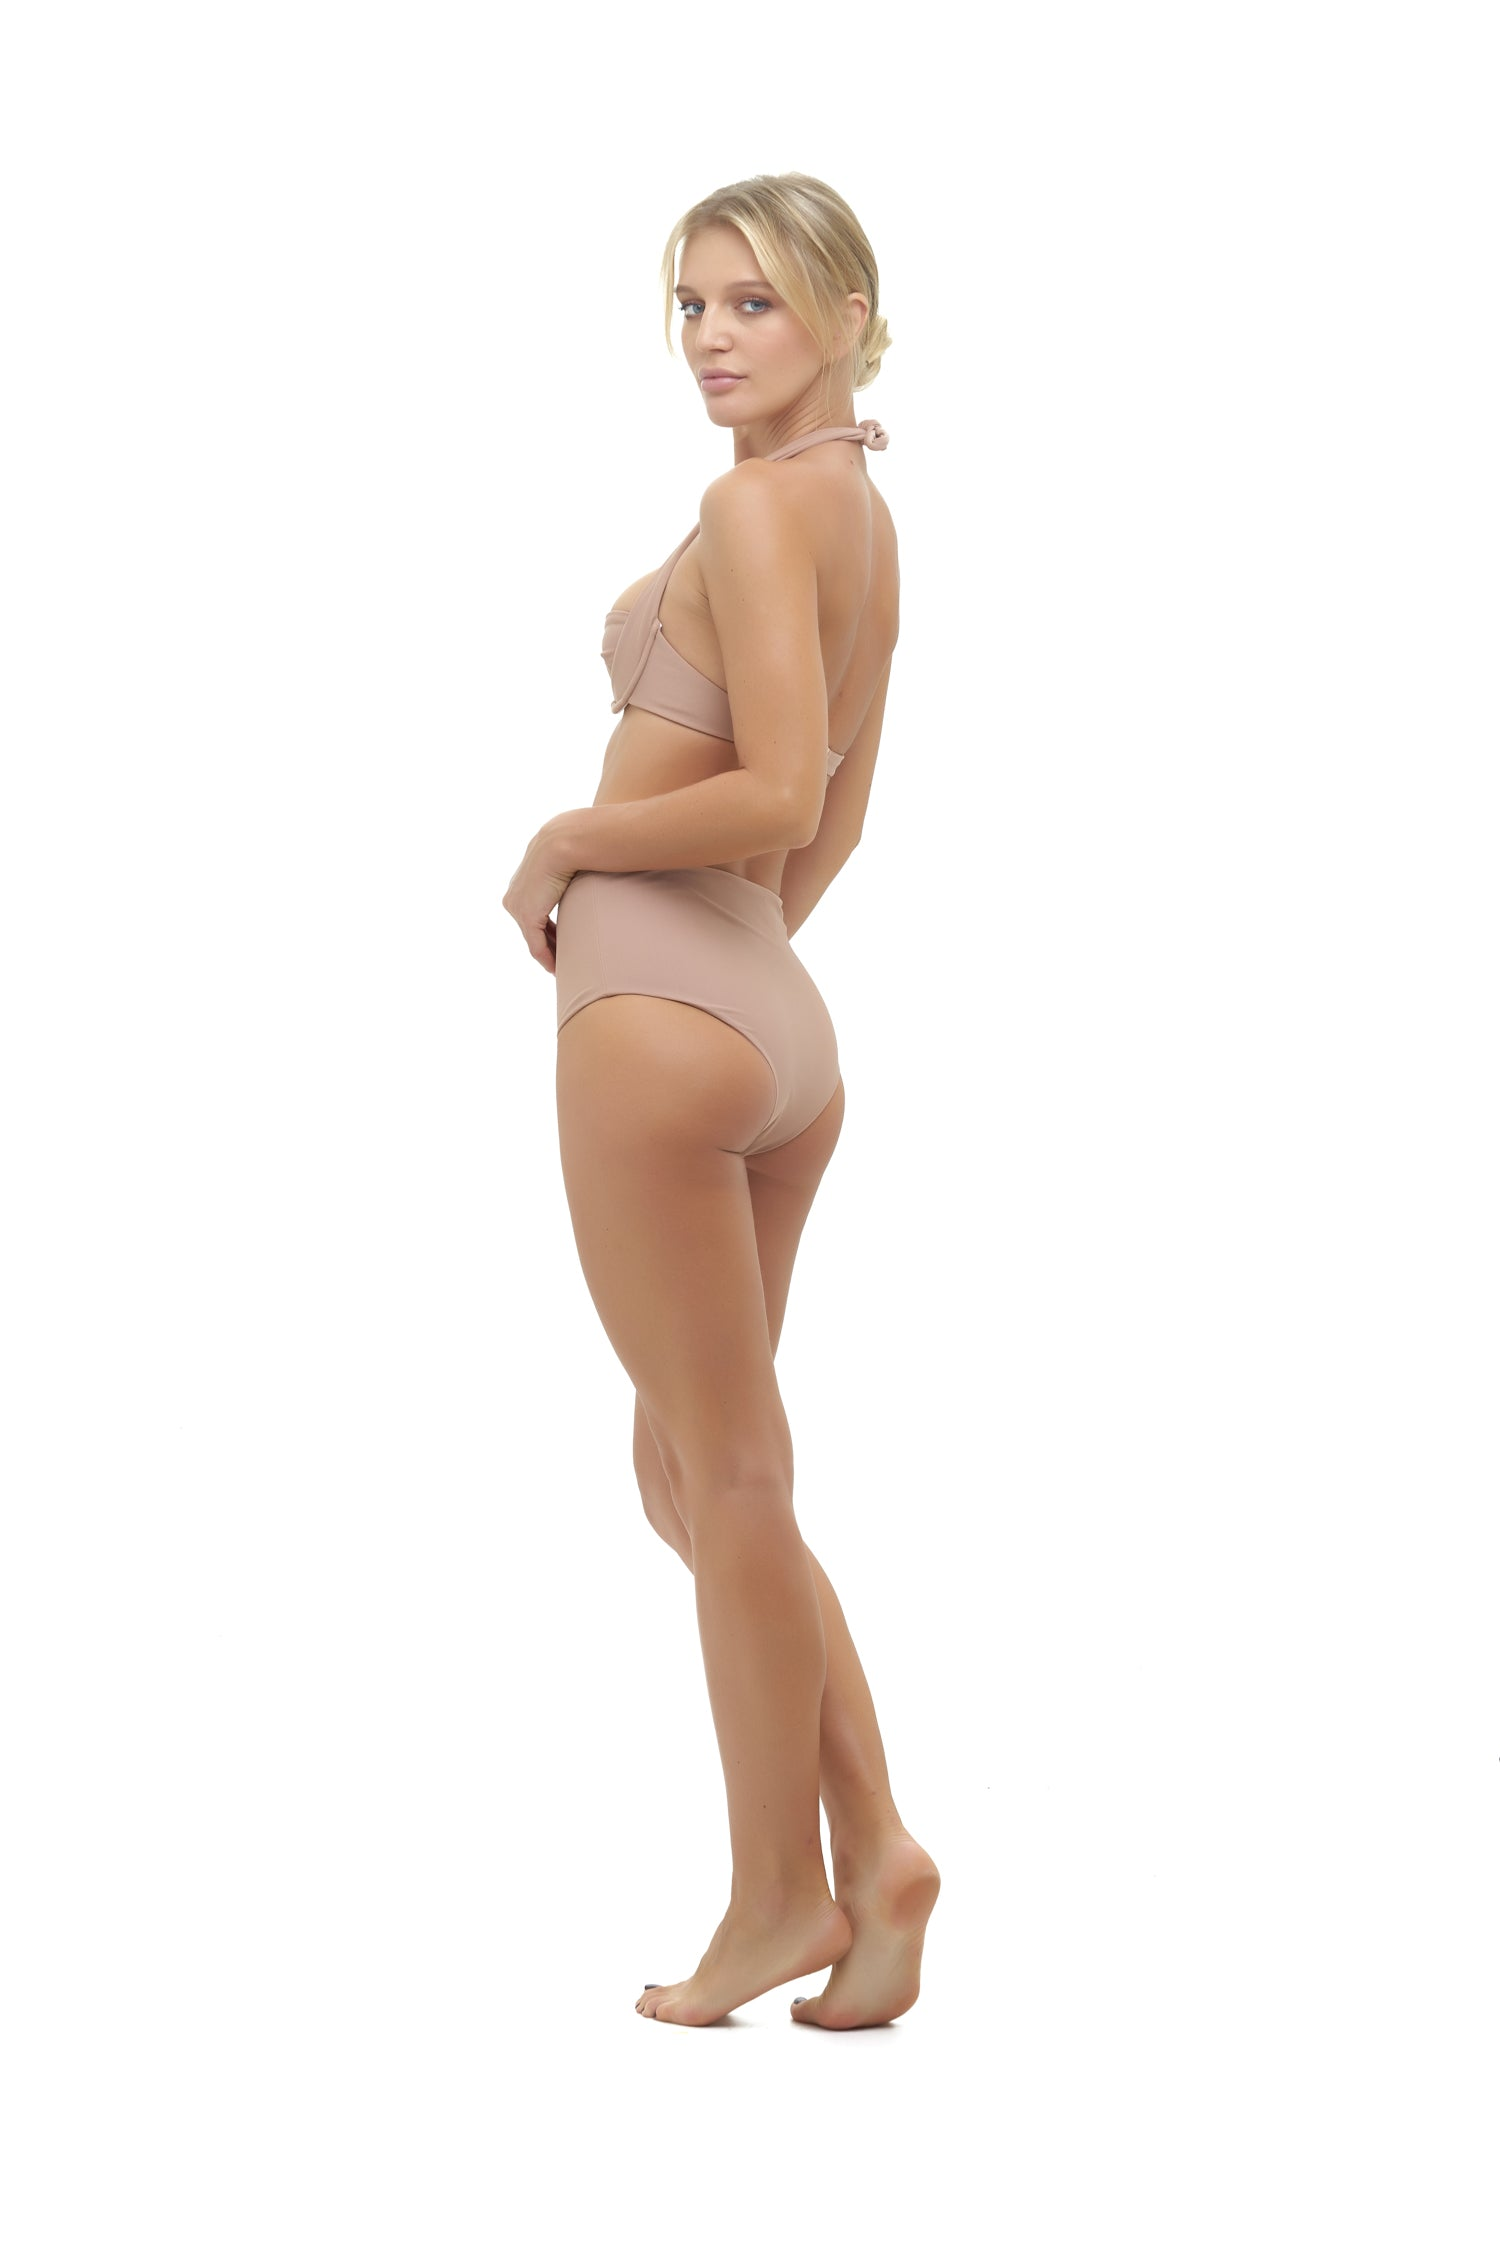 Storm Swimwear - Cannes - High Waist Bikini Bottom in Nude